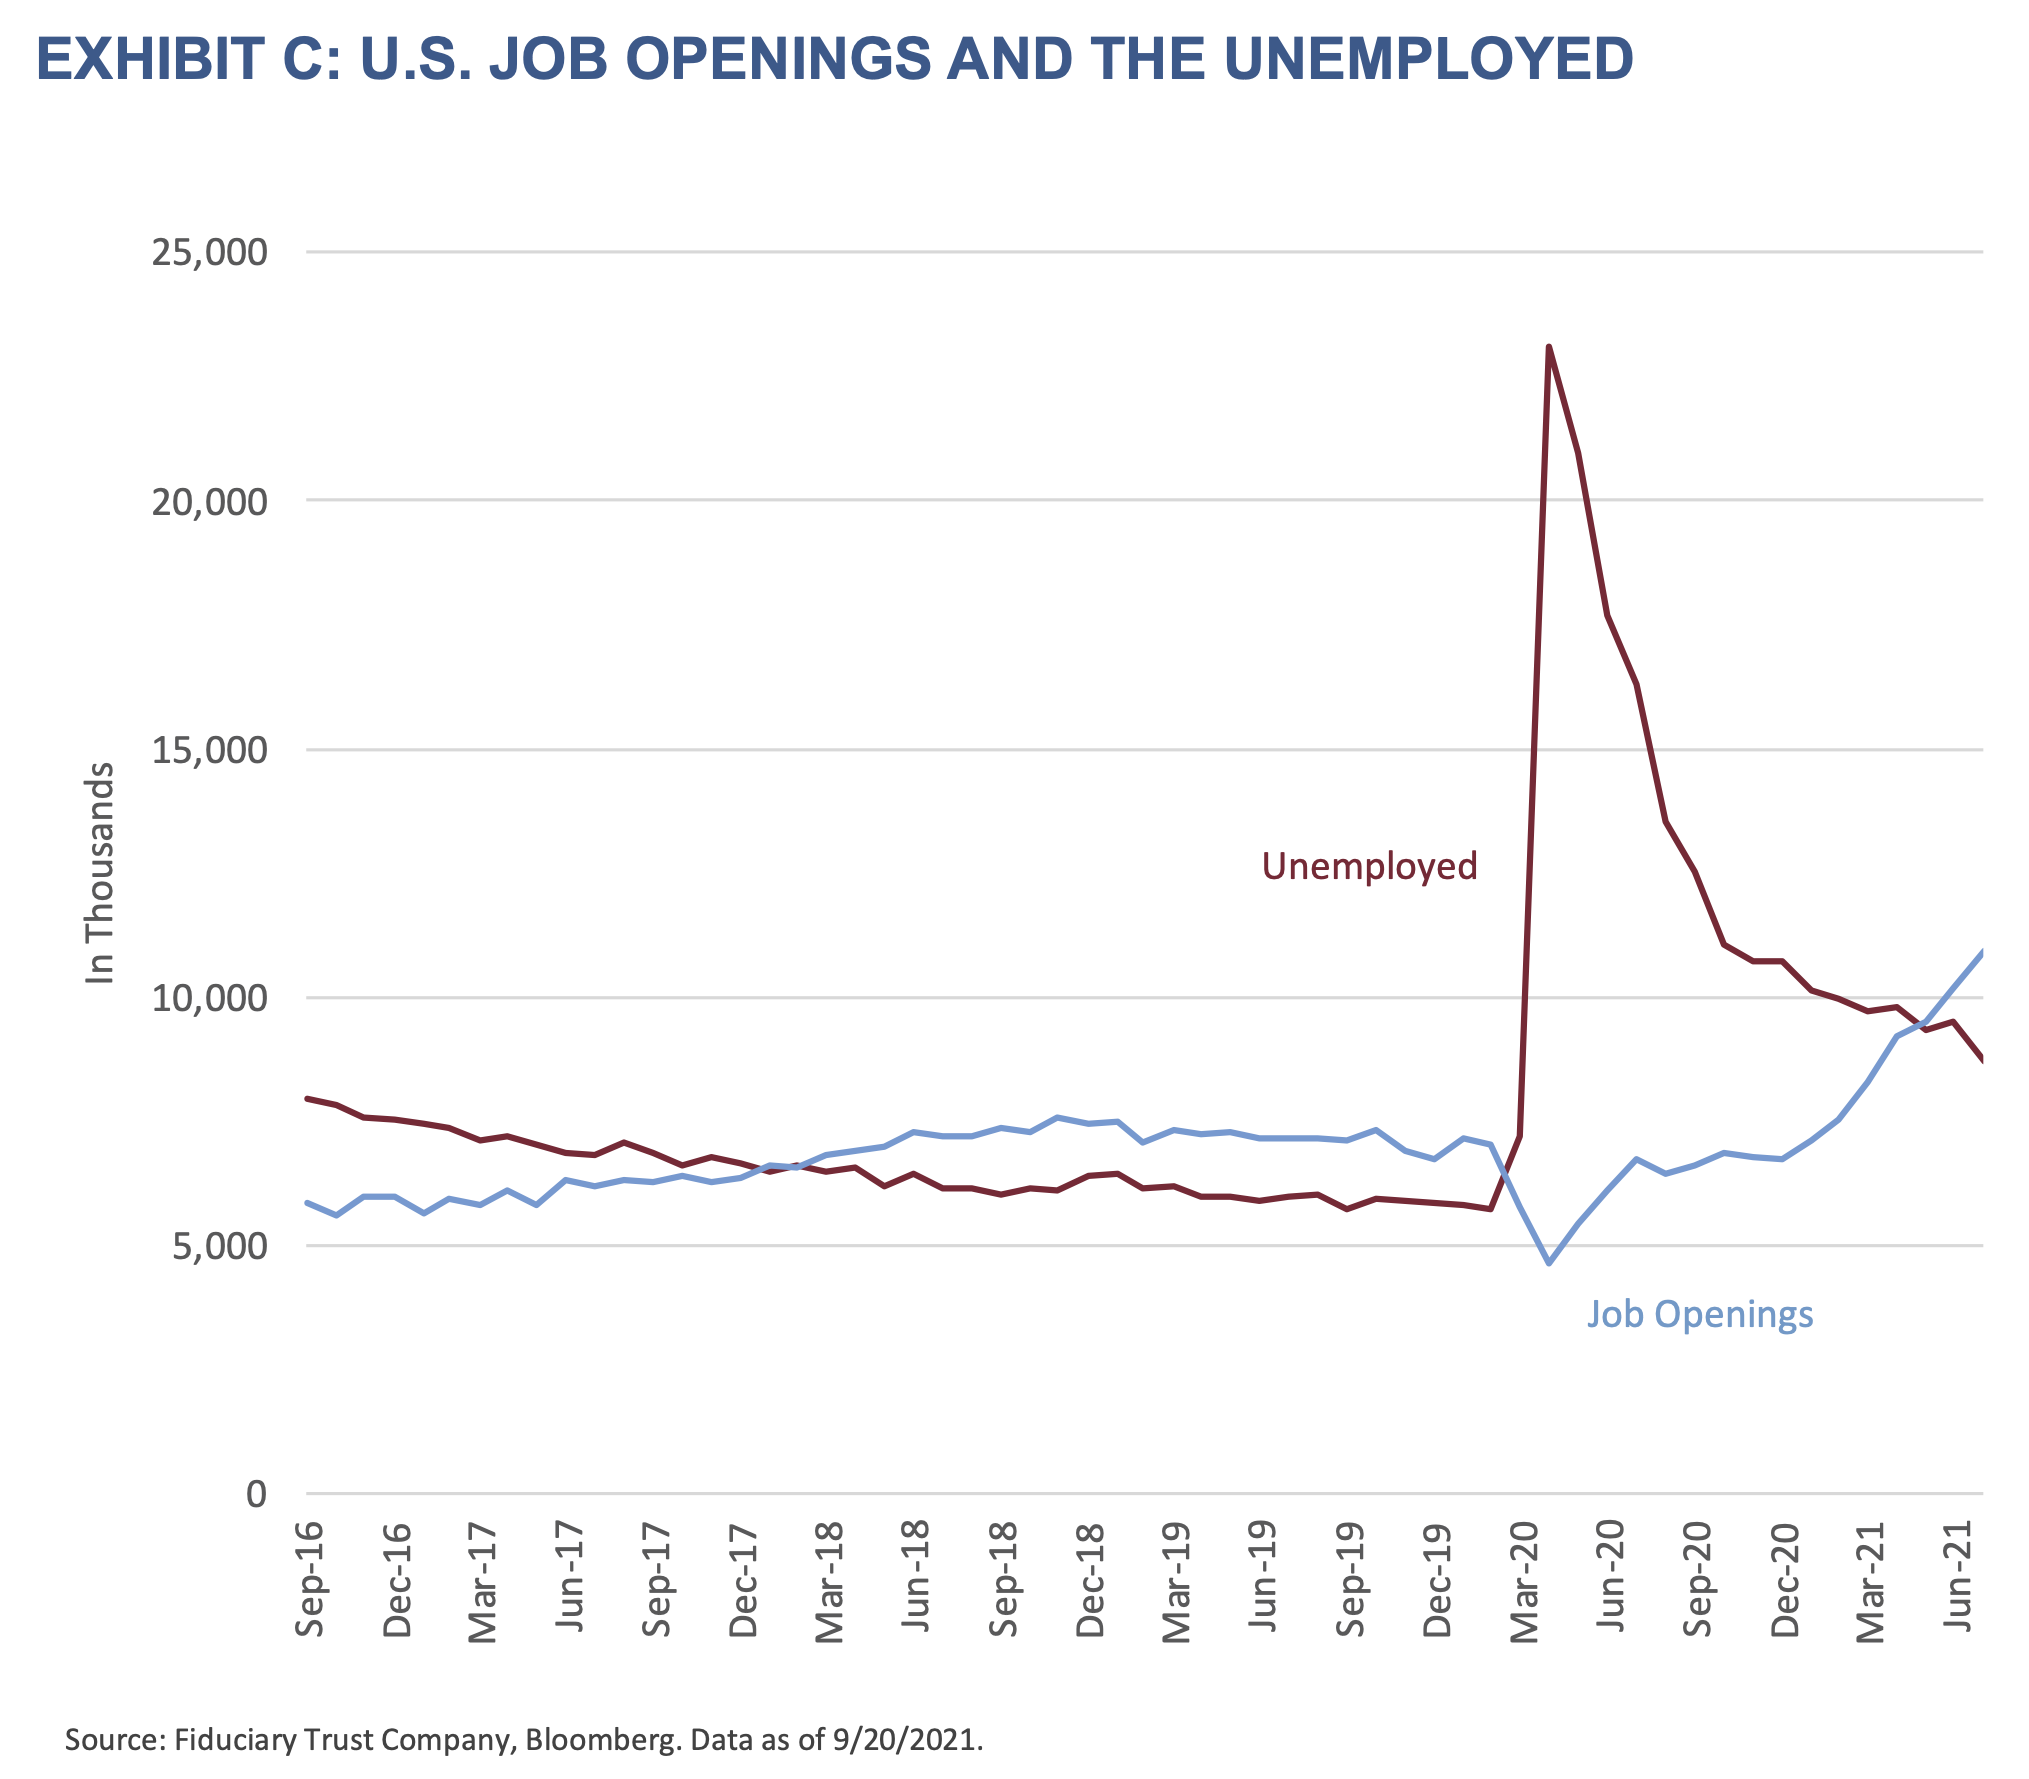 2021 Q4 Outlook - Exhibit C- U.S. Job Openings and the Unemployed